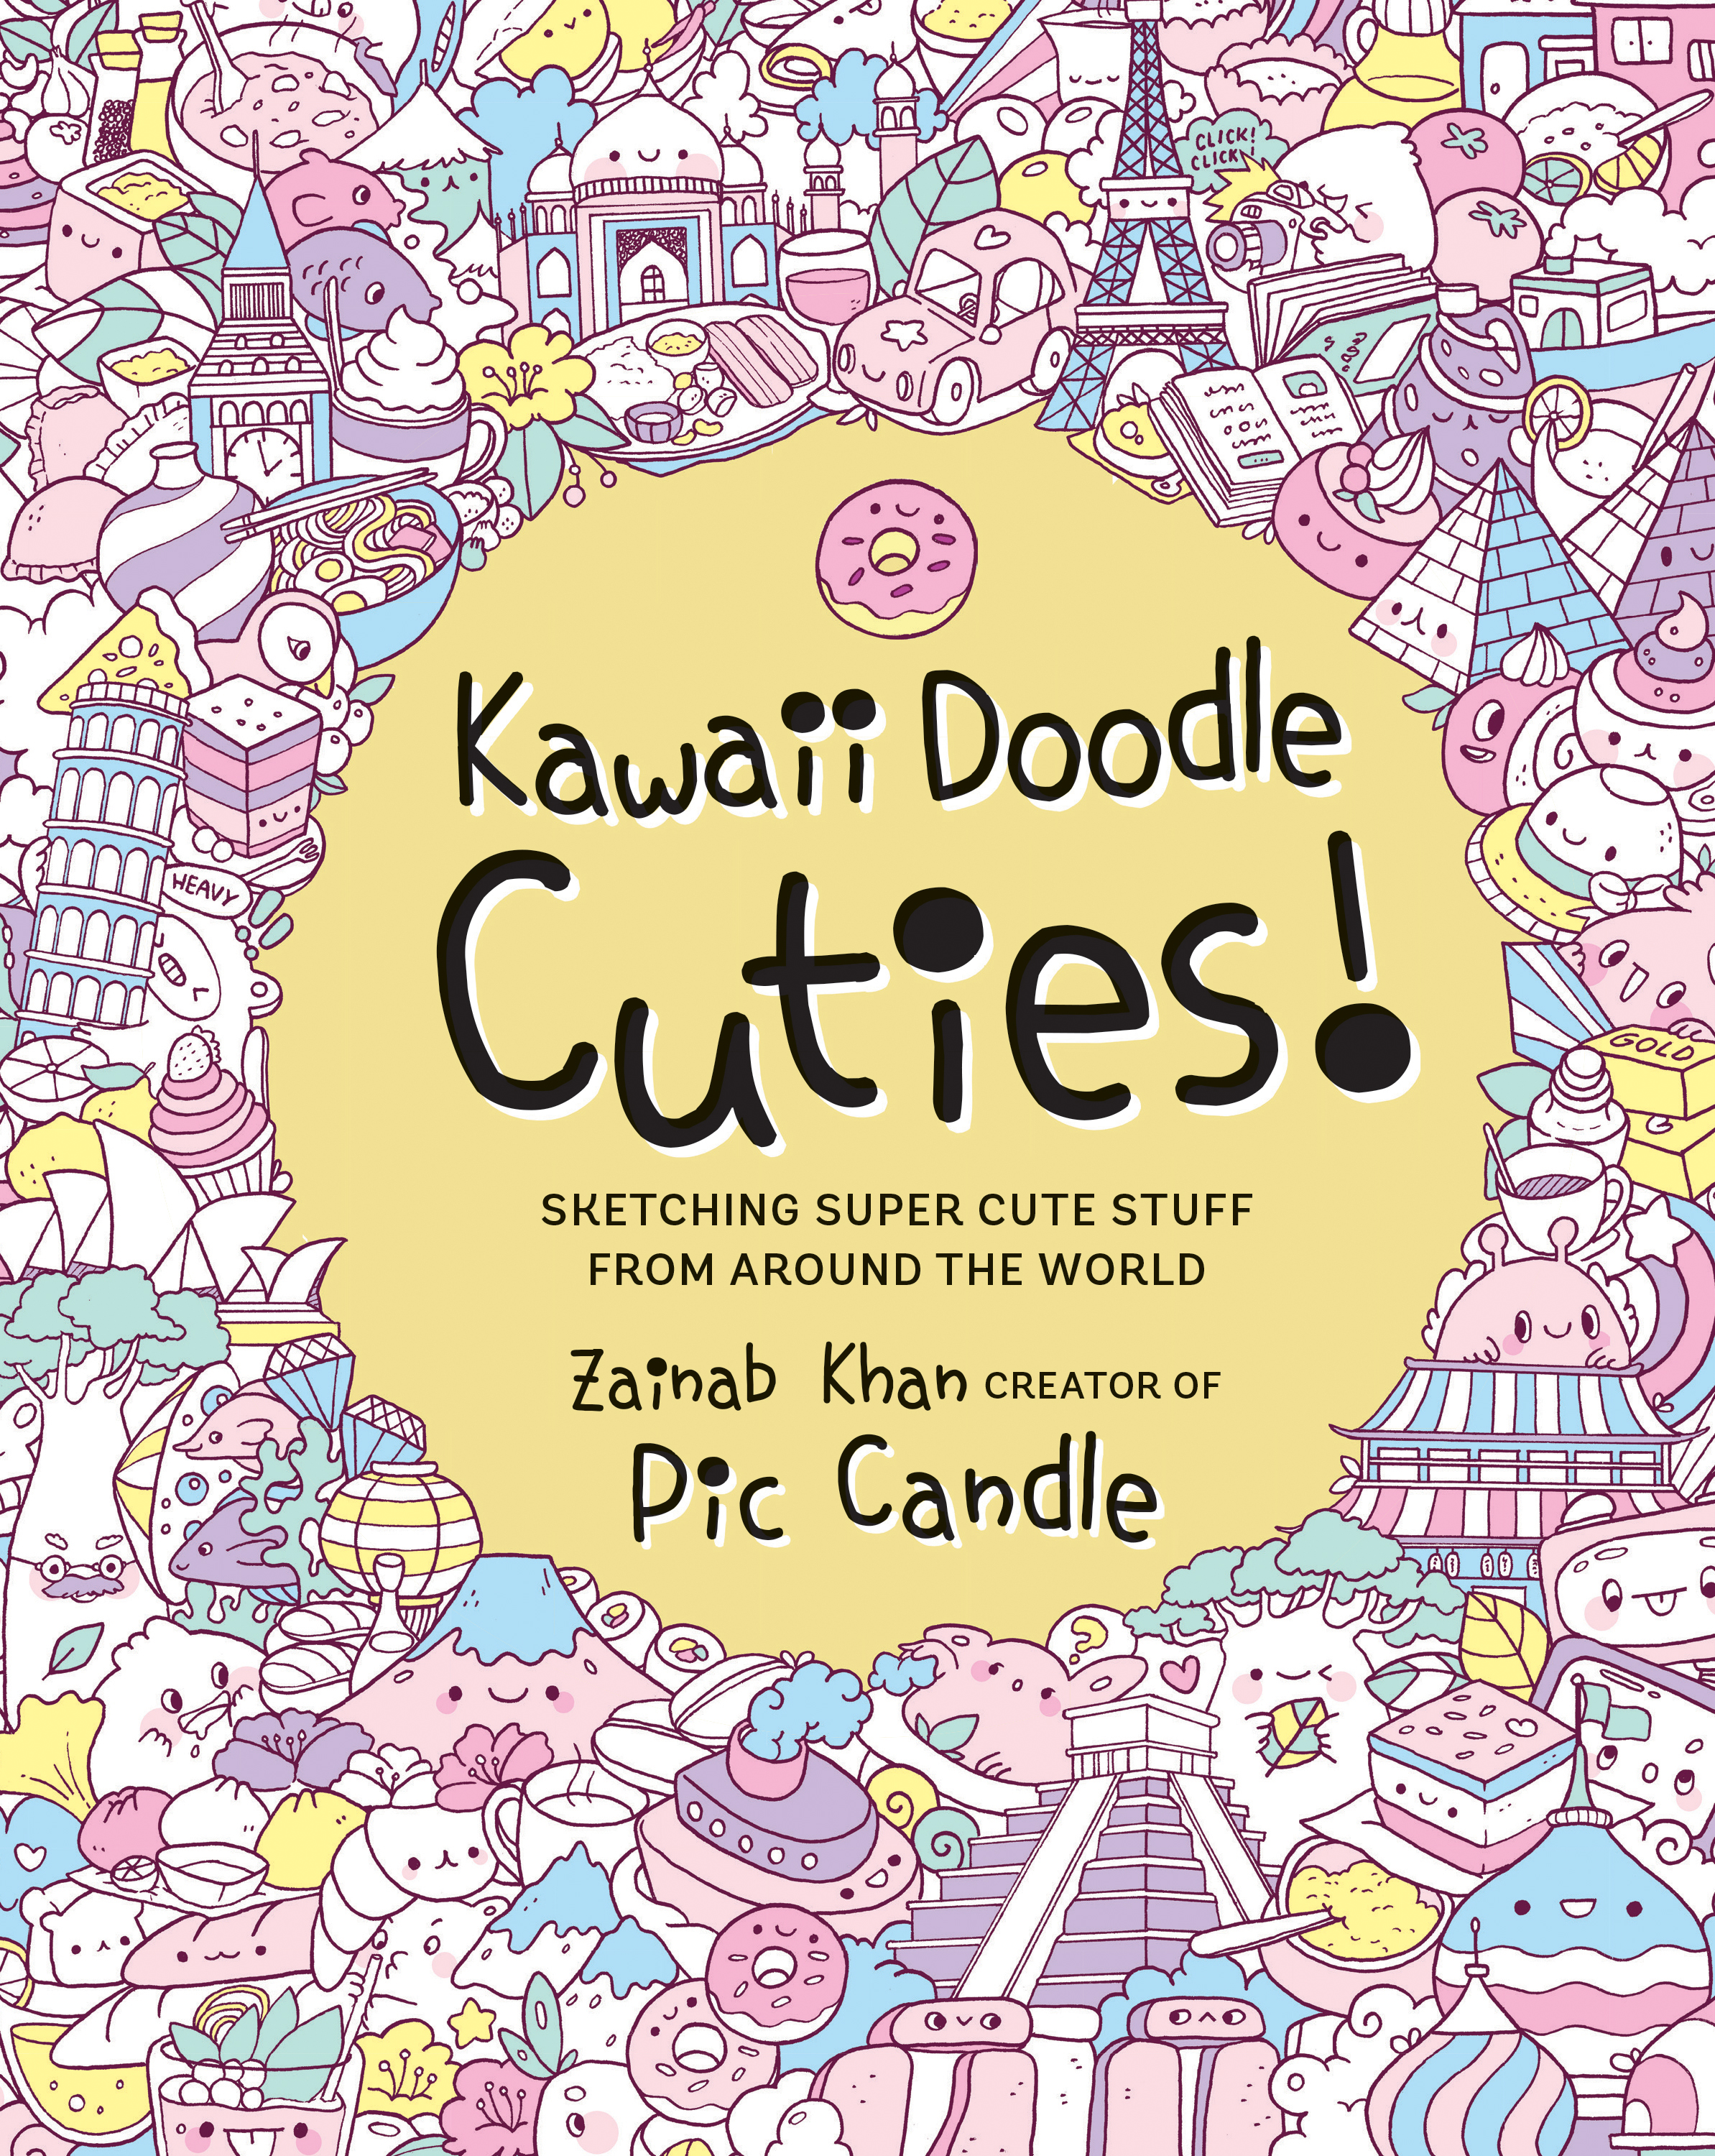 Kawaii Doodle Cuties. Sketching Super Stuff from Around the World